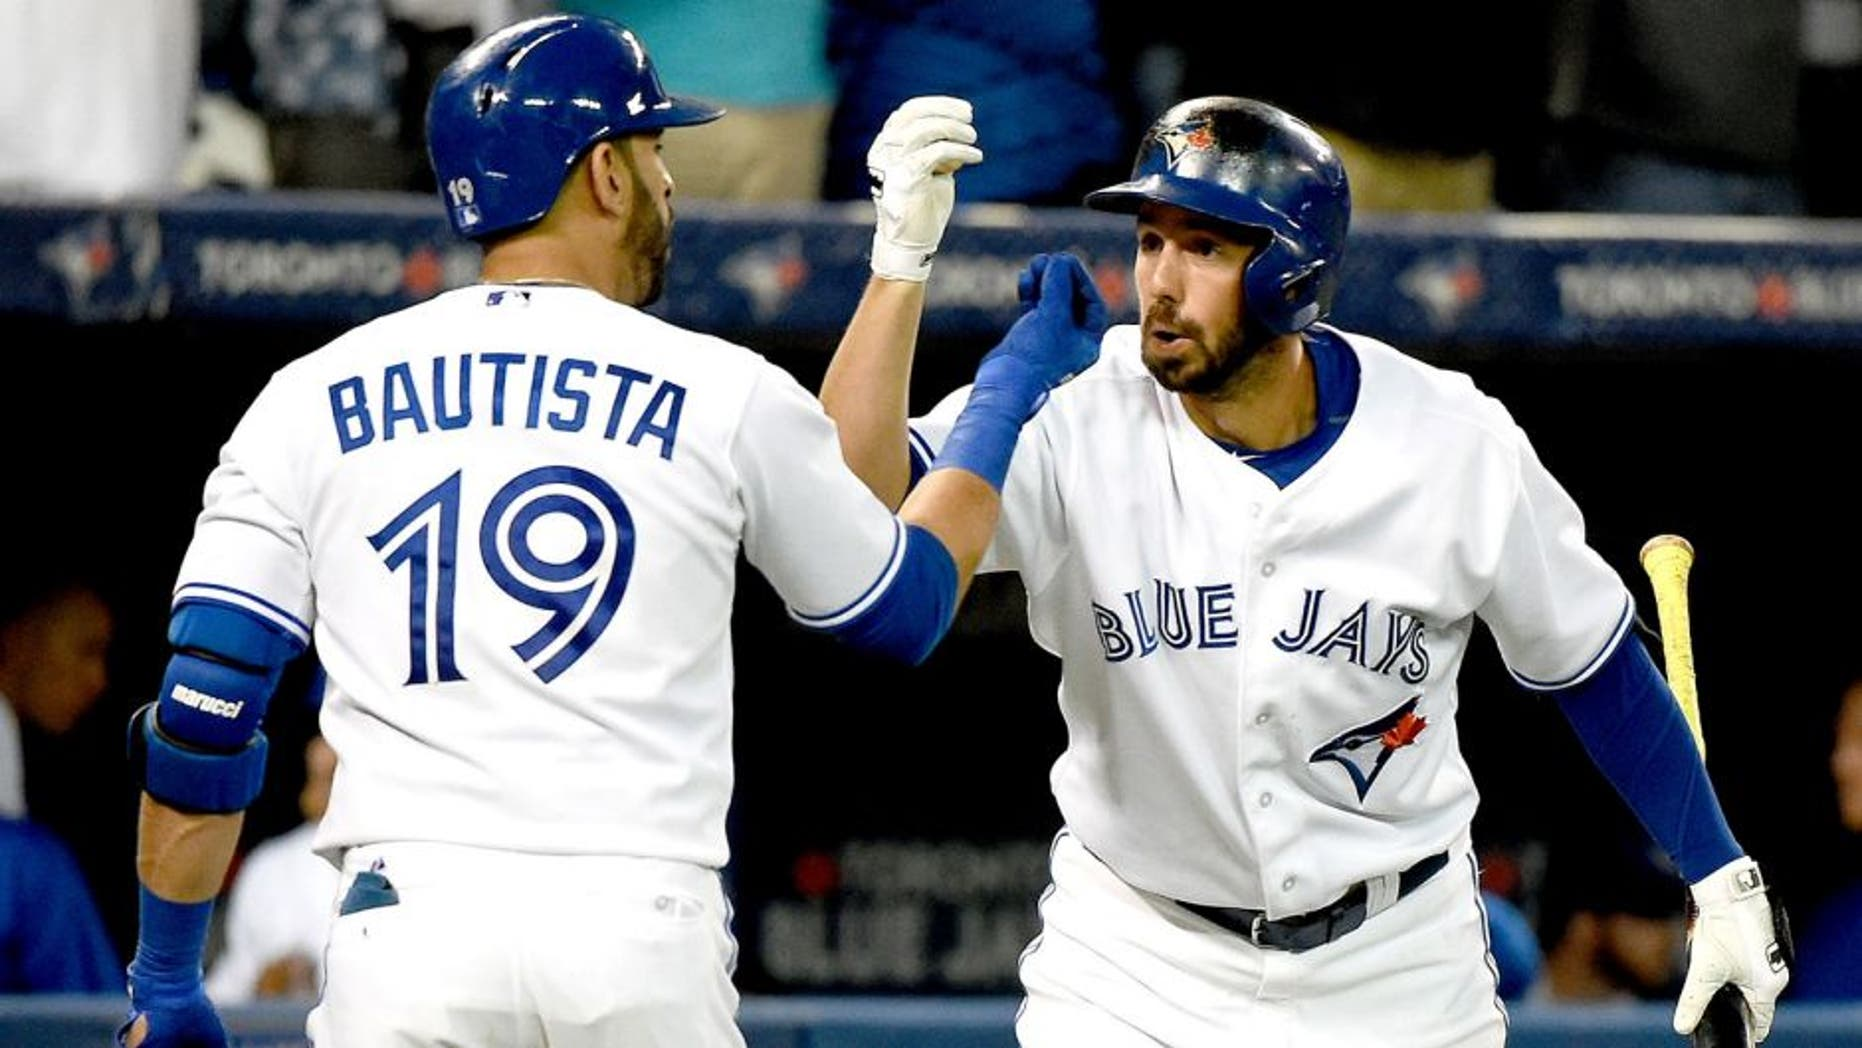 Aug 11, 2015; Toronto, Ontario, CAN; Toronto Blue Jays right fielder Jose Bautista (19) is greeted by designated hitter Chris Colabello (15) after hitting a home run against Oakland Athletics in the fifth inning at Rogers Centre. Mandatory Credit: Dan Hamilton-USA TODAY Sports